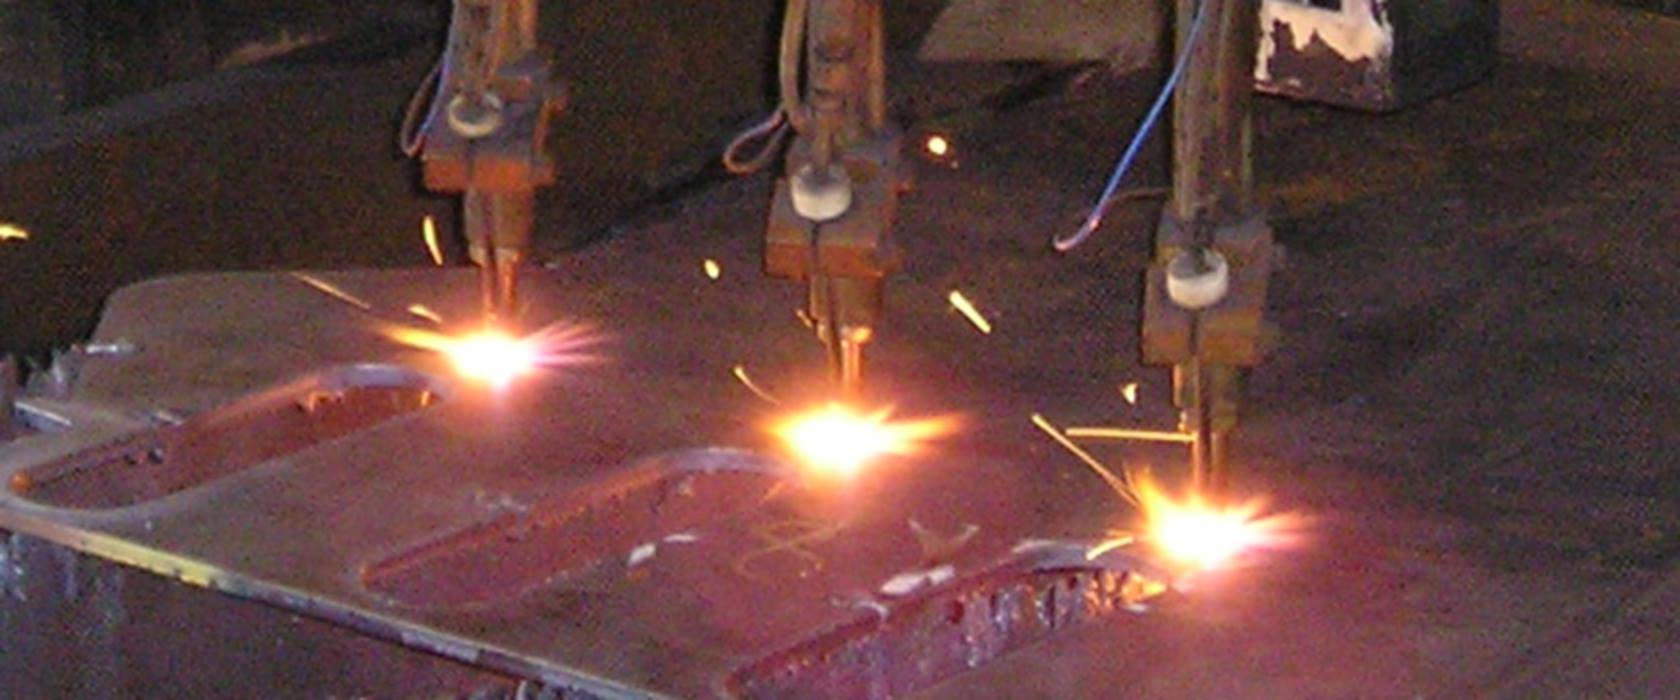 Sample Parts – Flame Cutting